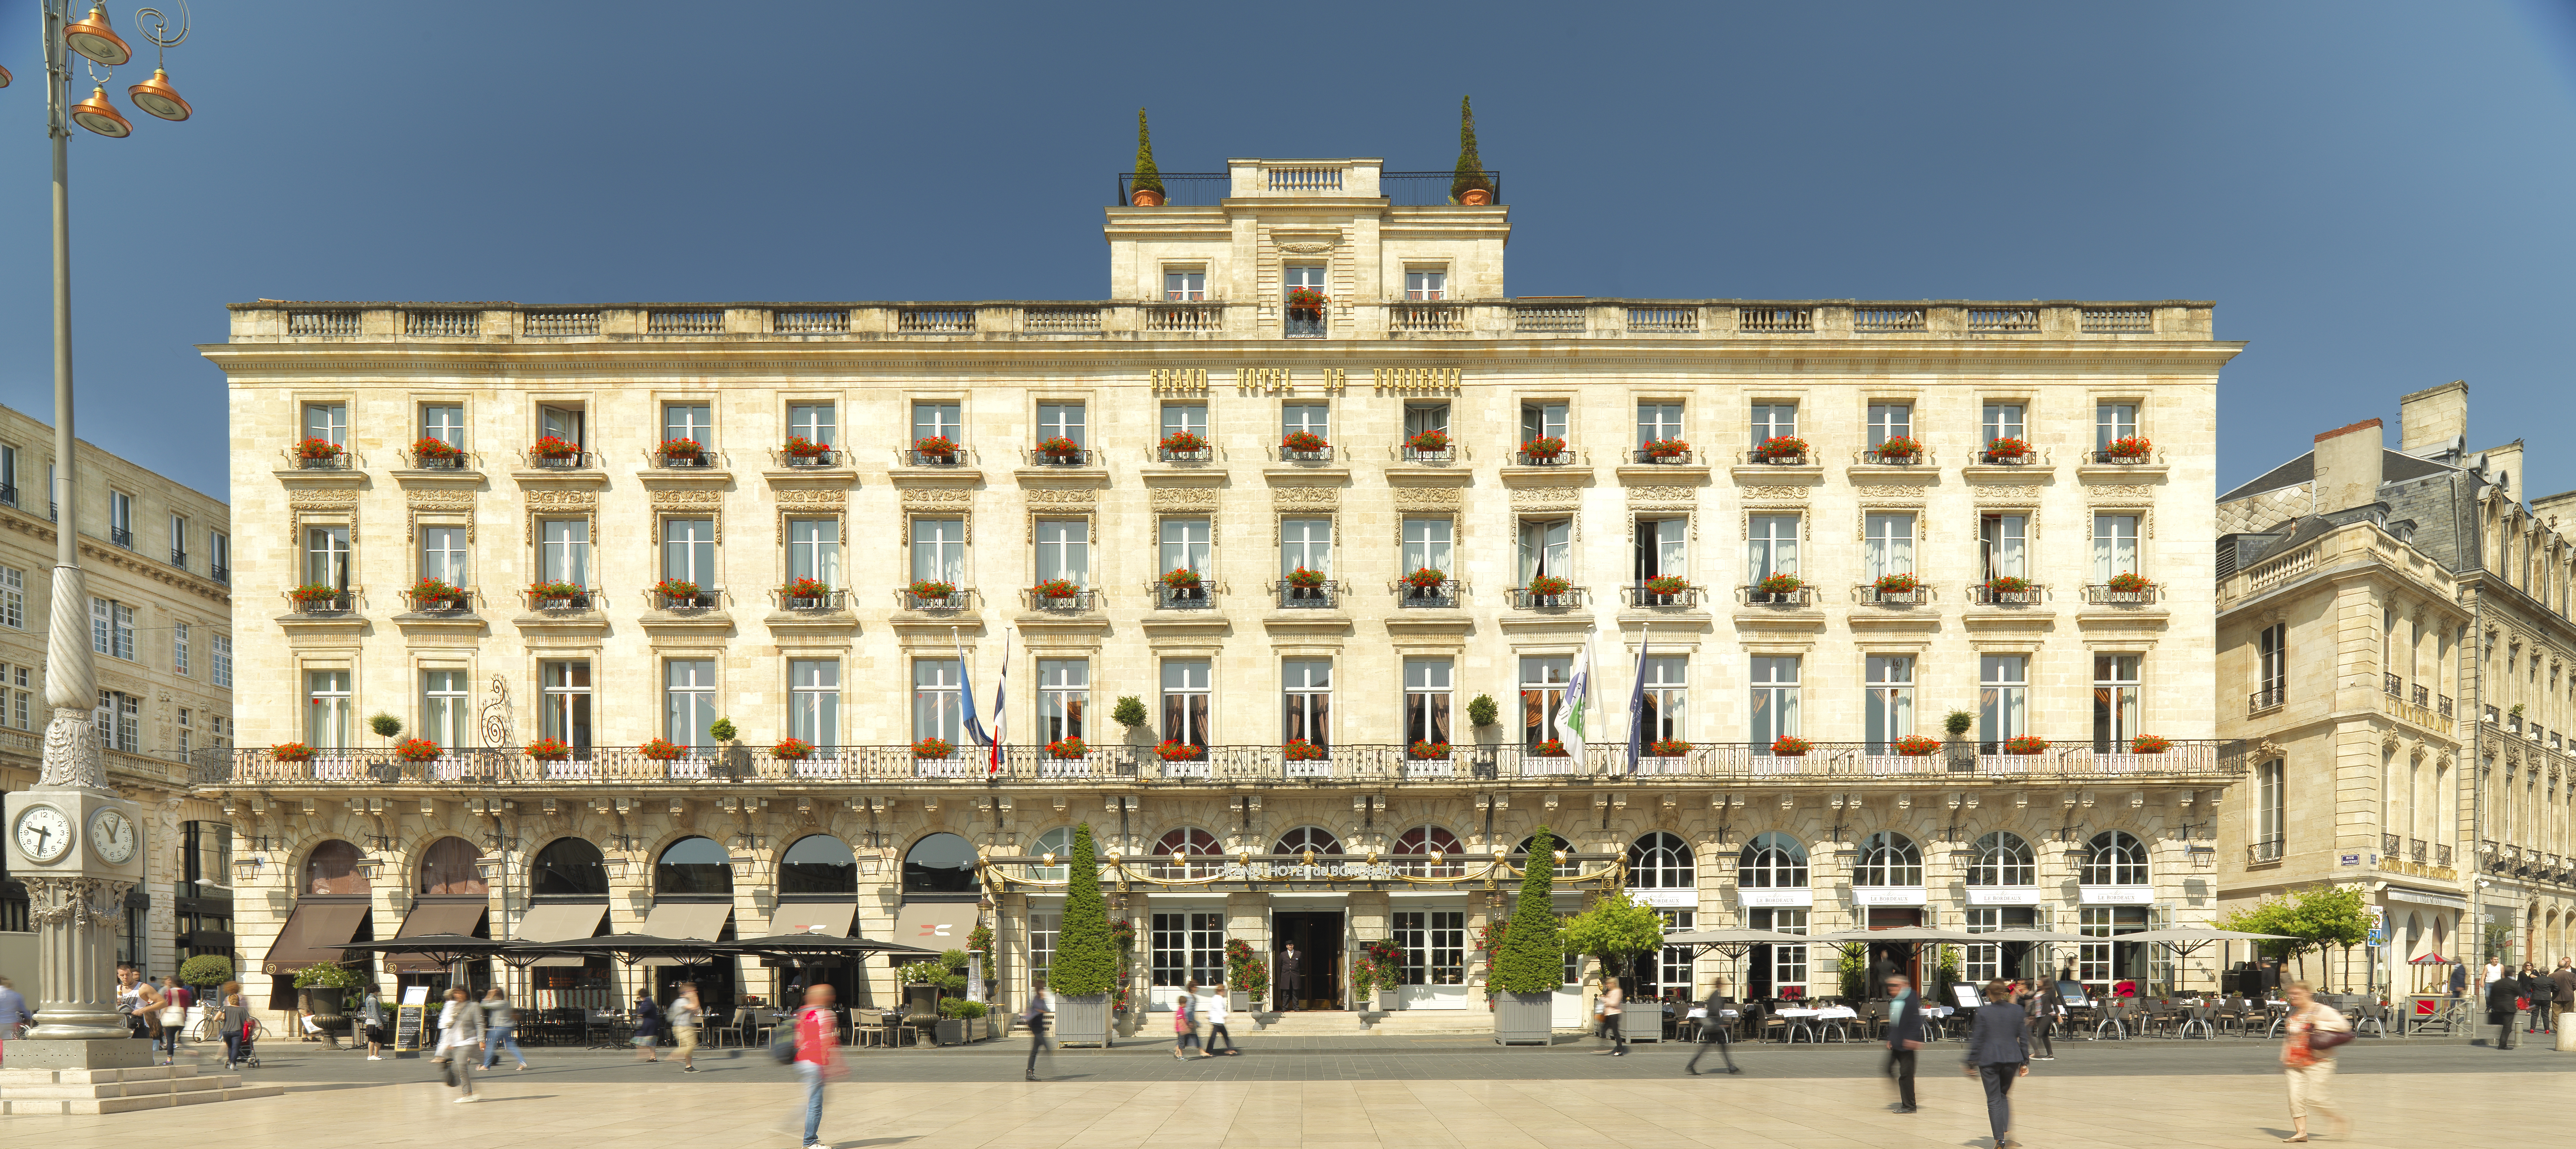 Image courtesy of the Intercontinental Bordeaux - Le Grand Hotel.